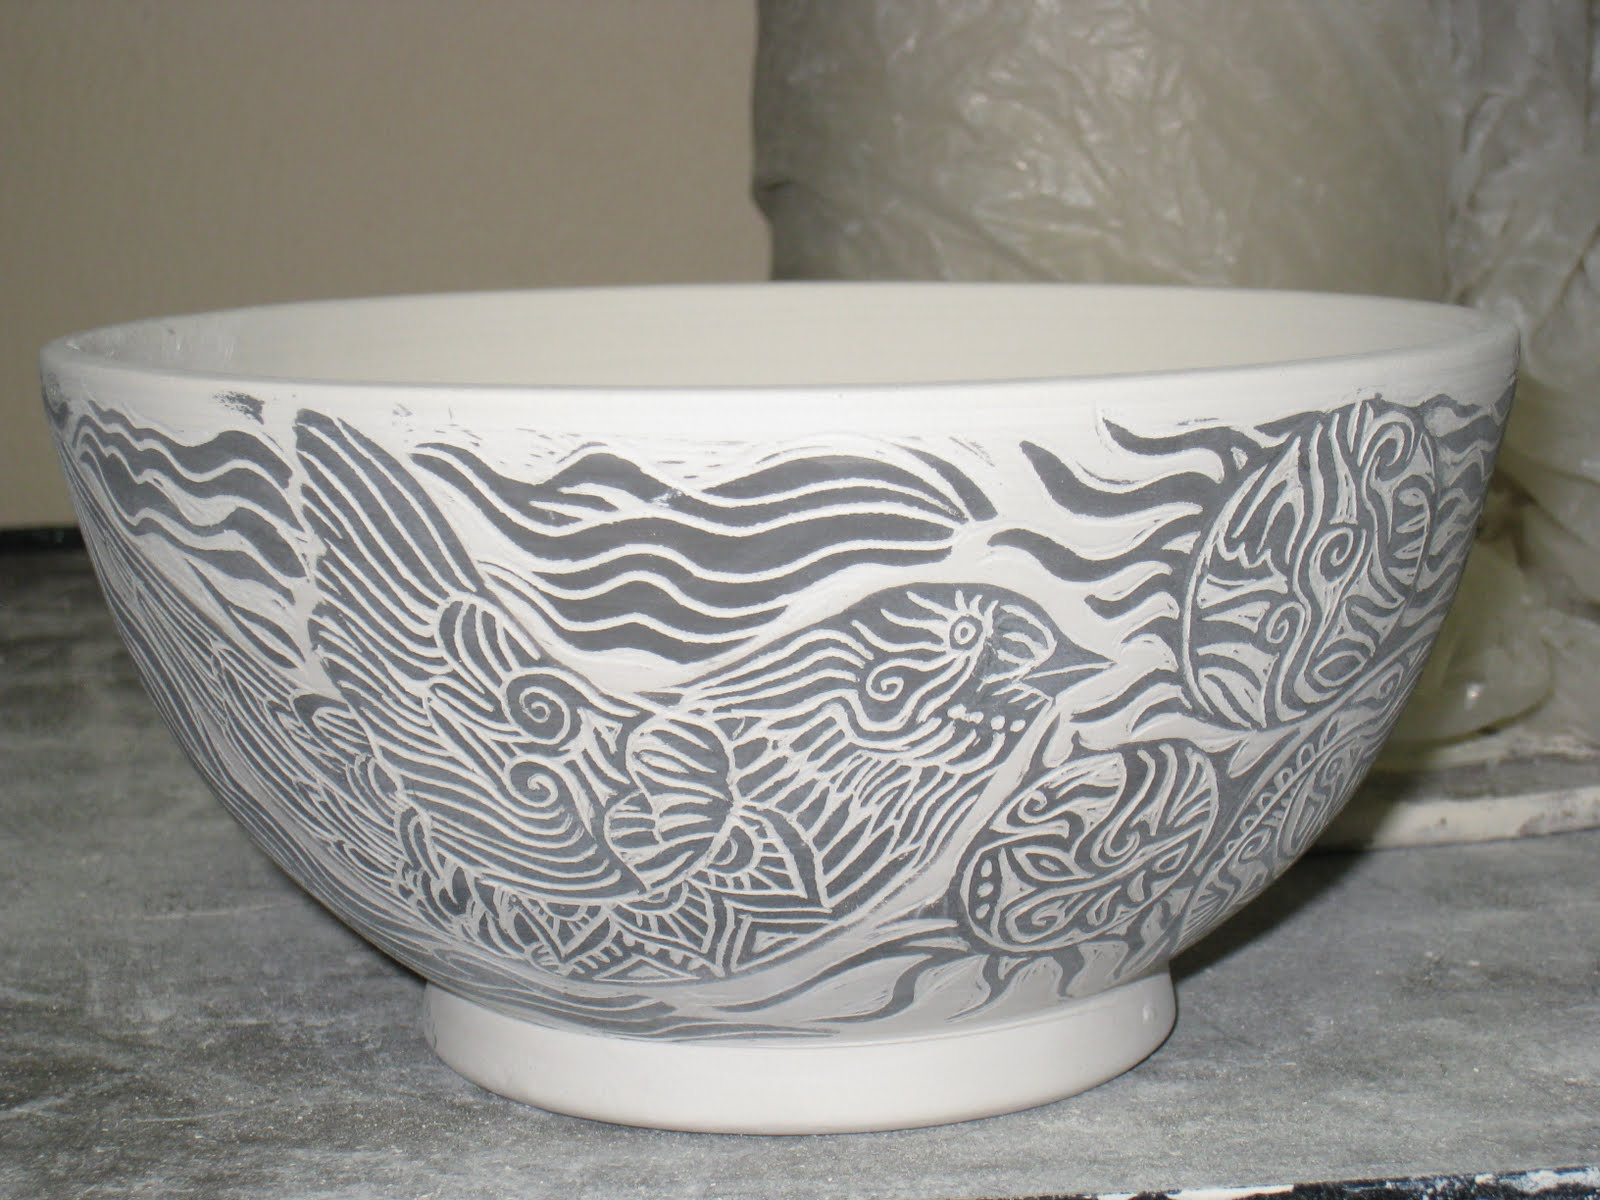 Randi martin kish ceramics carving designs into cups